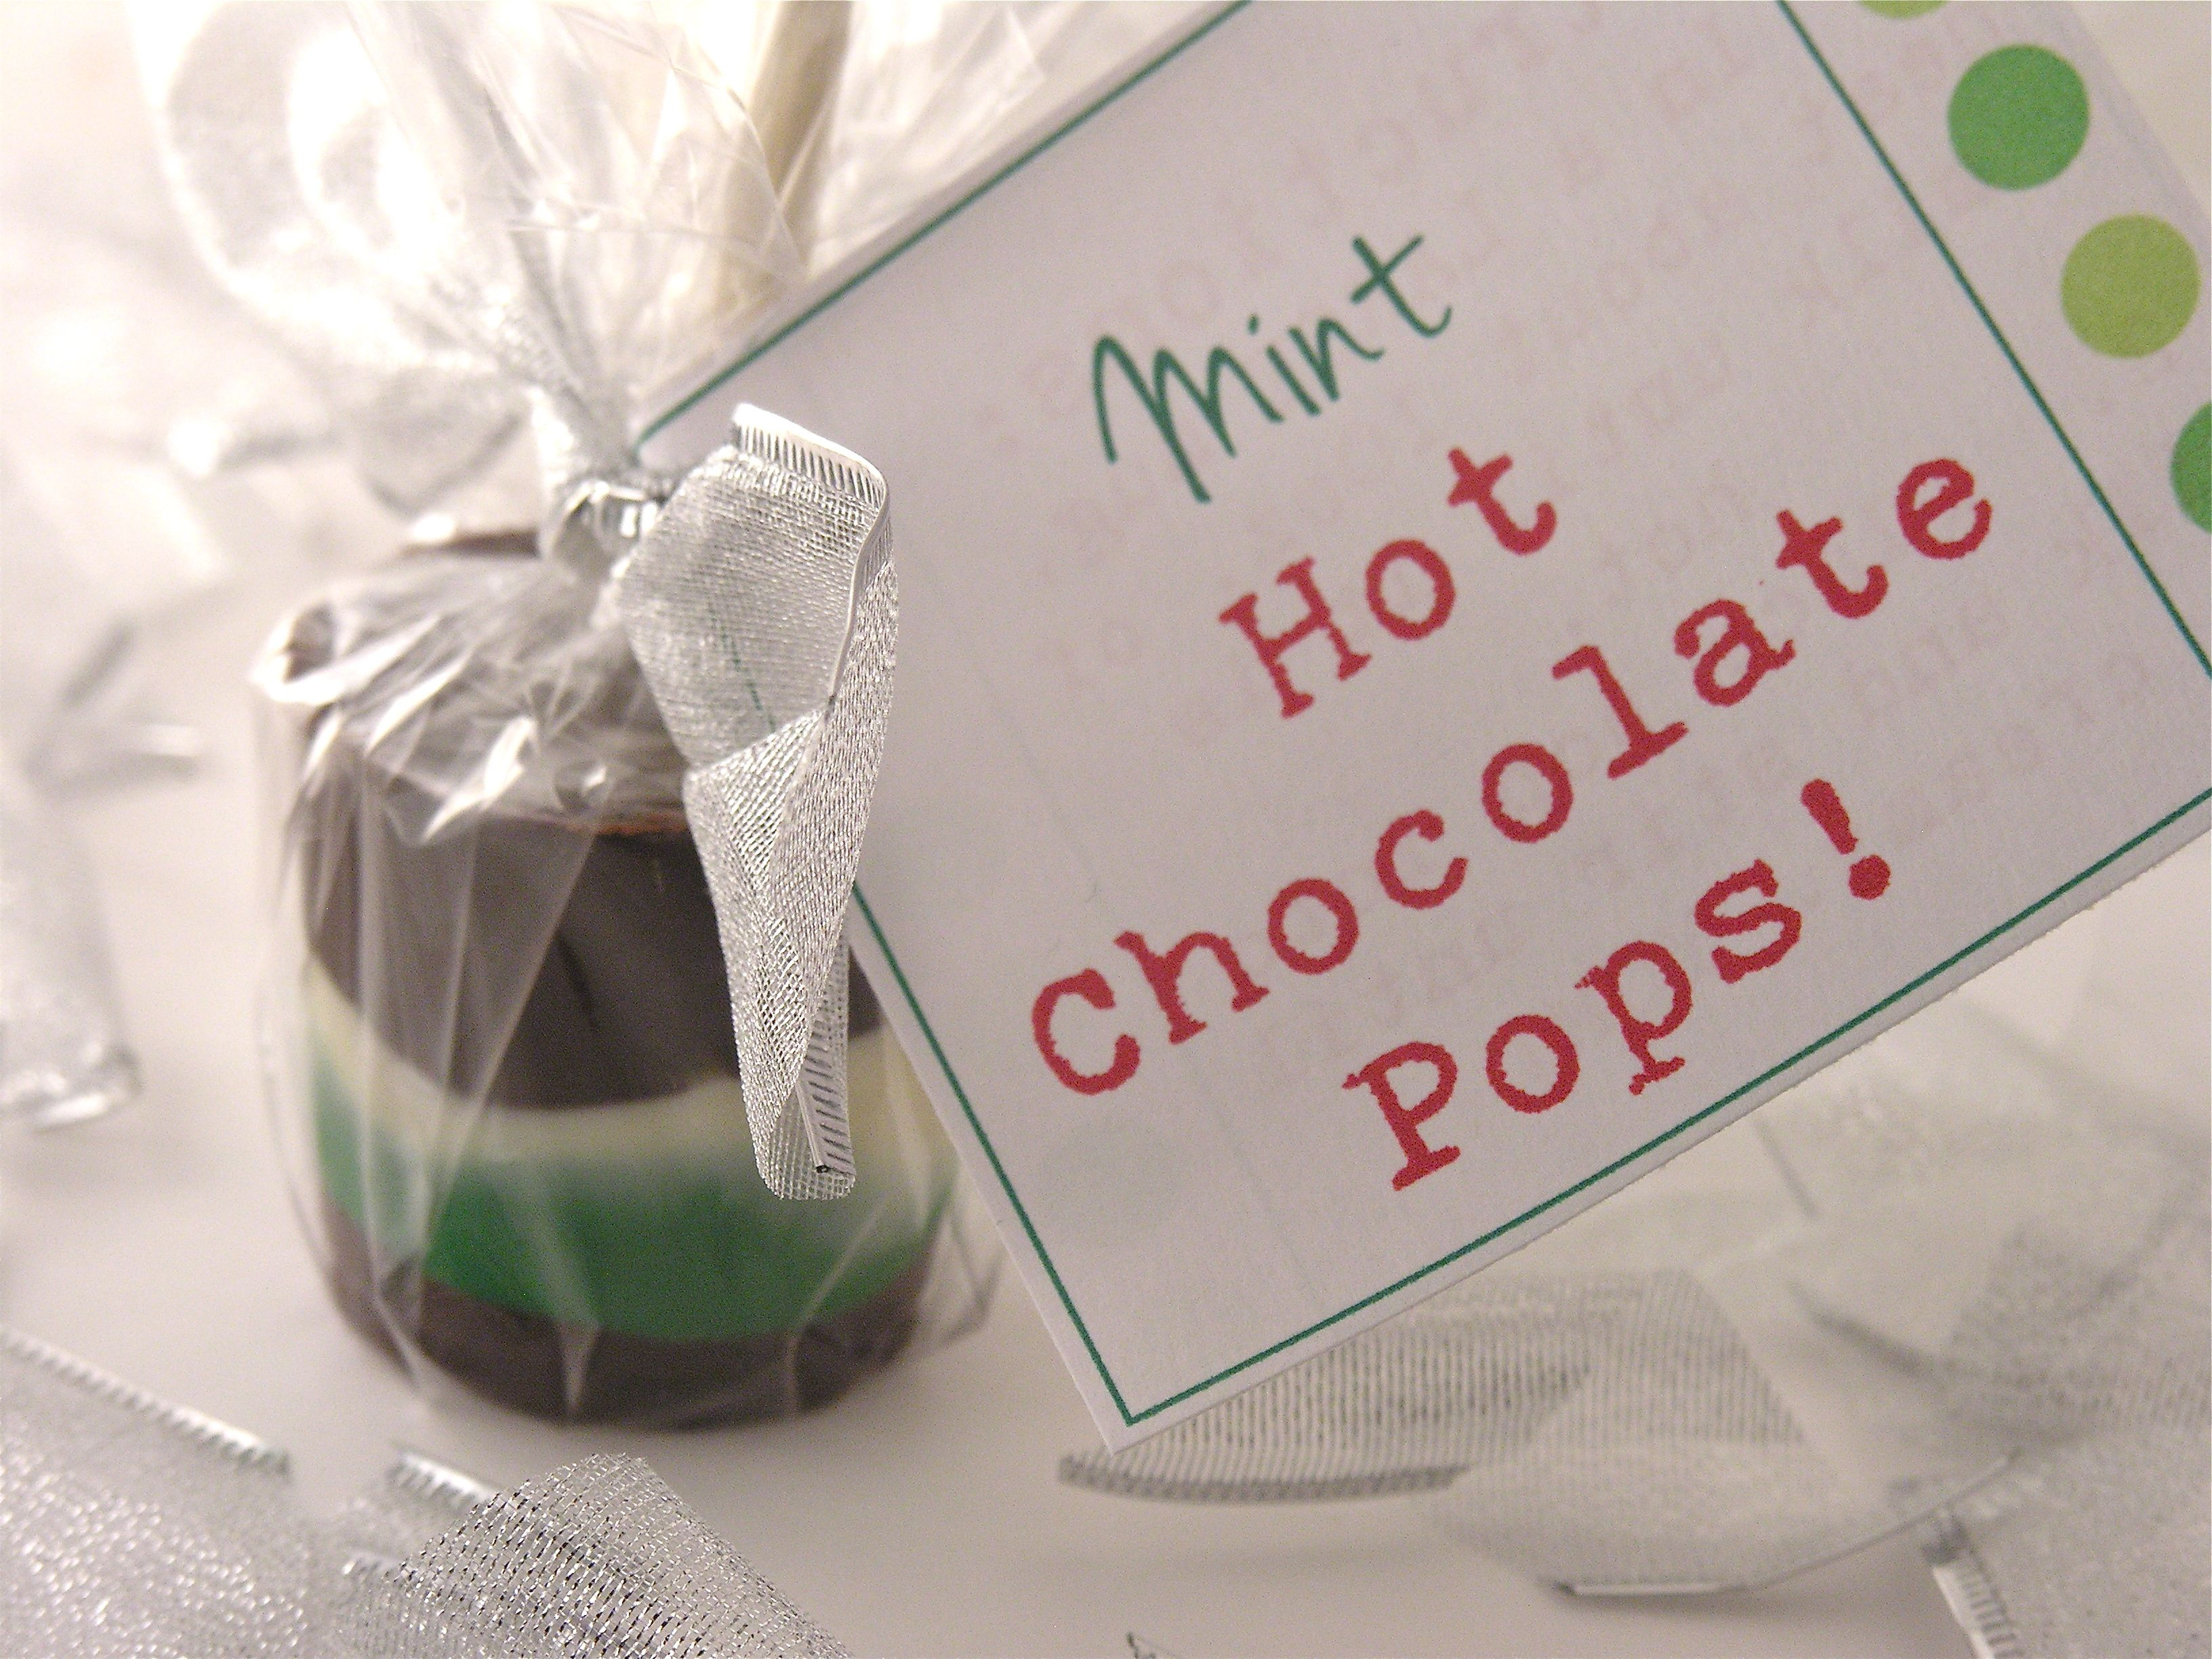 Hot Chocolate Pops -- place in large cup of hot steamed milk & stir to make a delicious cup of hot cocoa! #chocolatepops